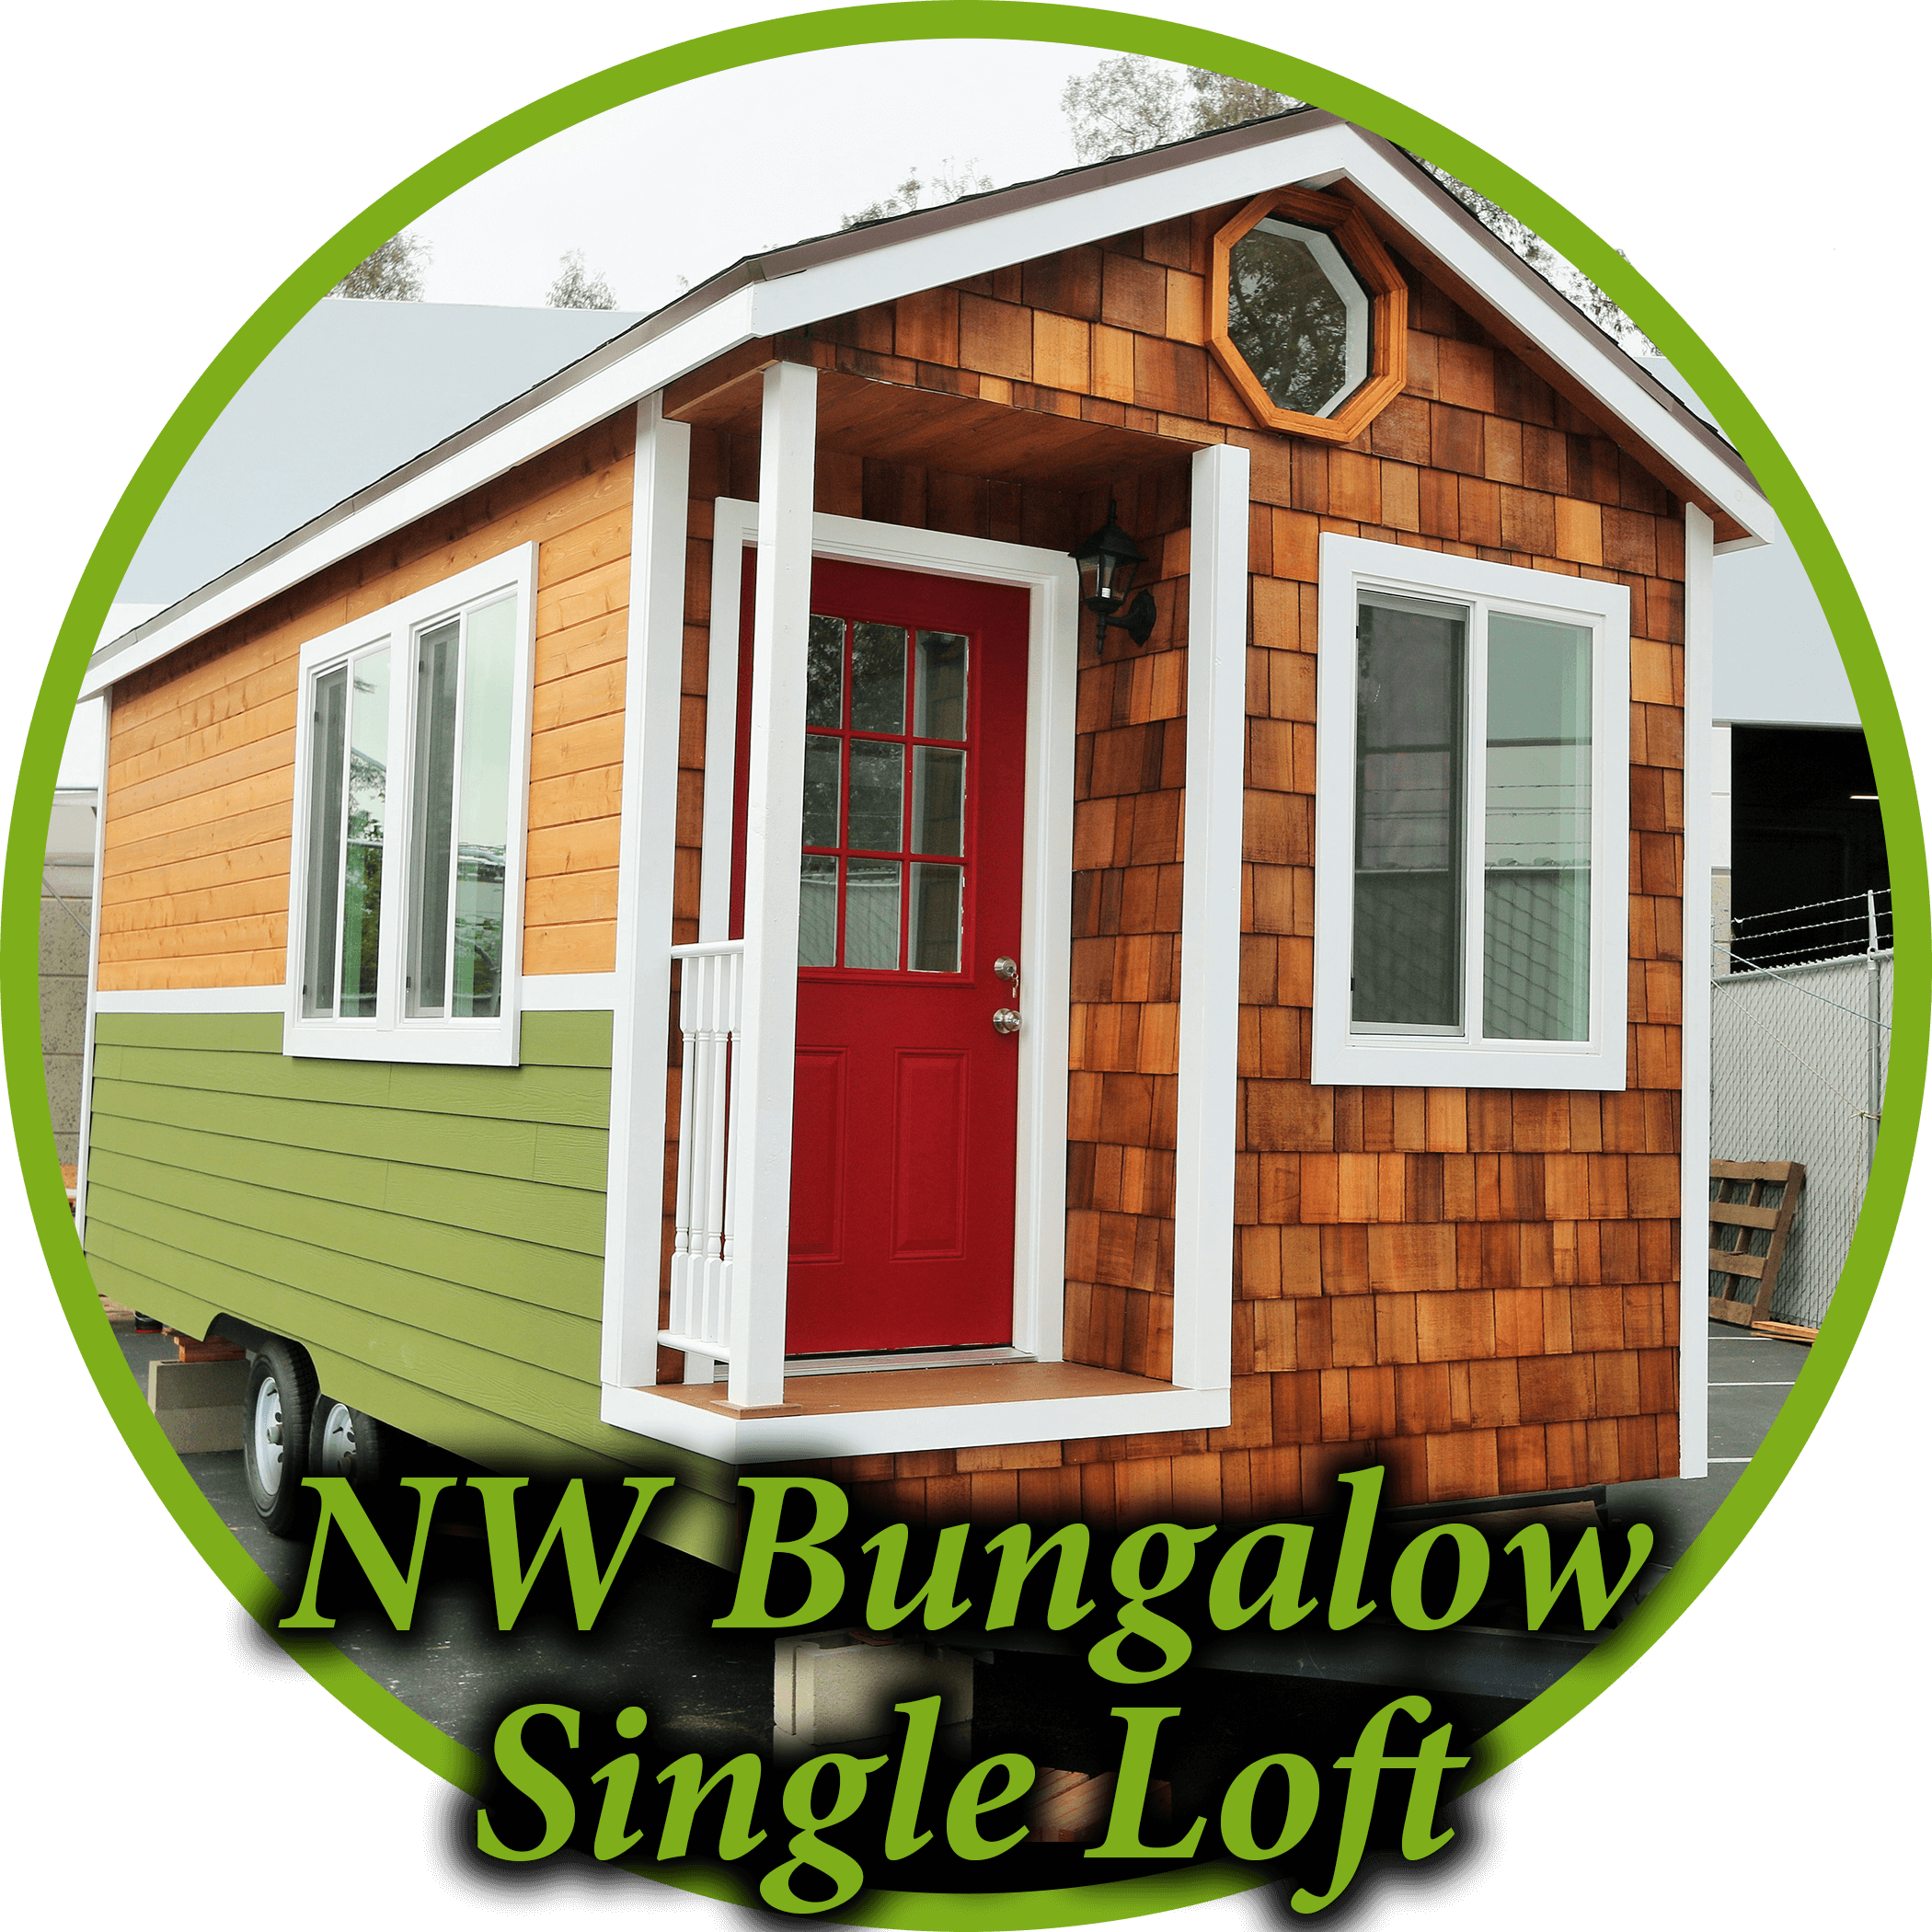 nw bungalow single loft circle (optimized).png